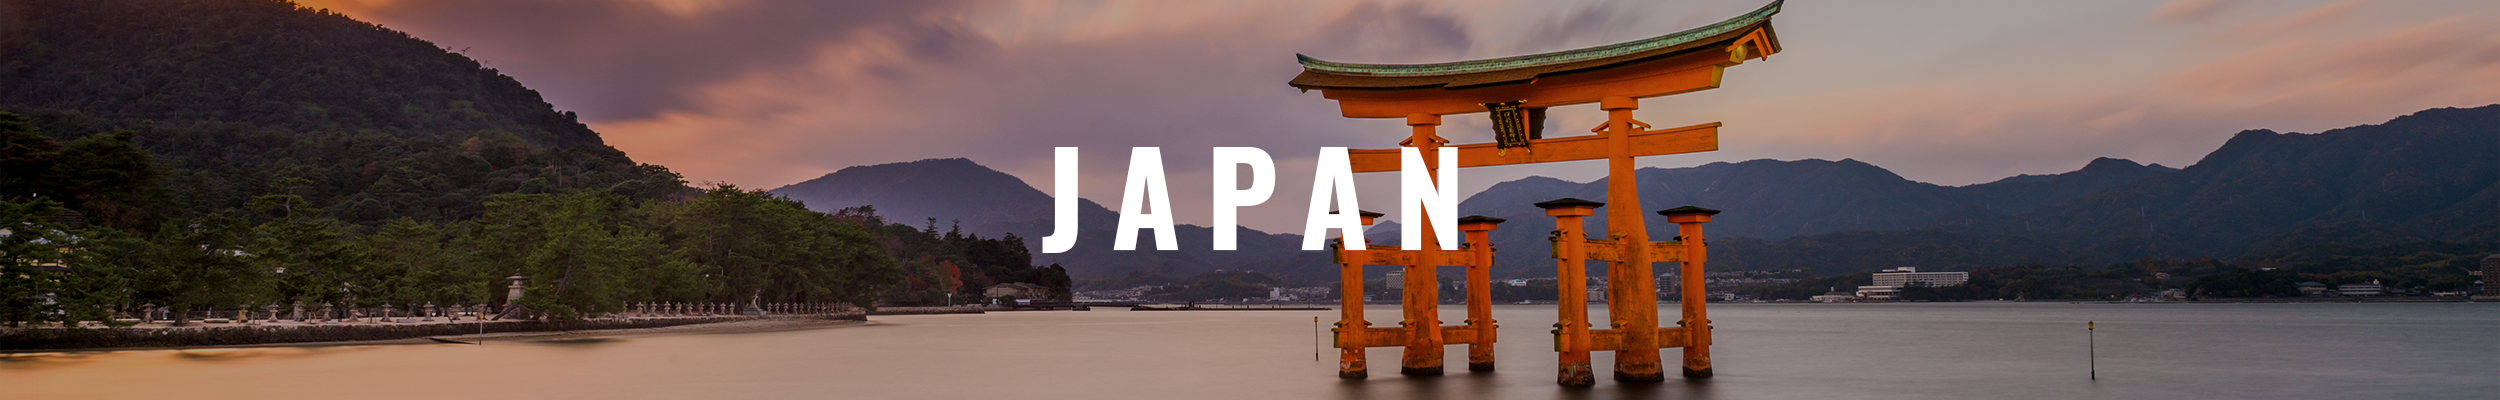 Japan: Top Destinations | Travel | Smithsonian